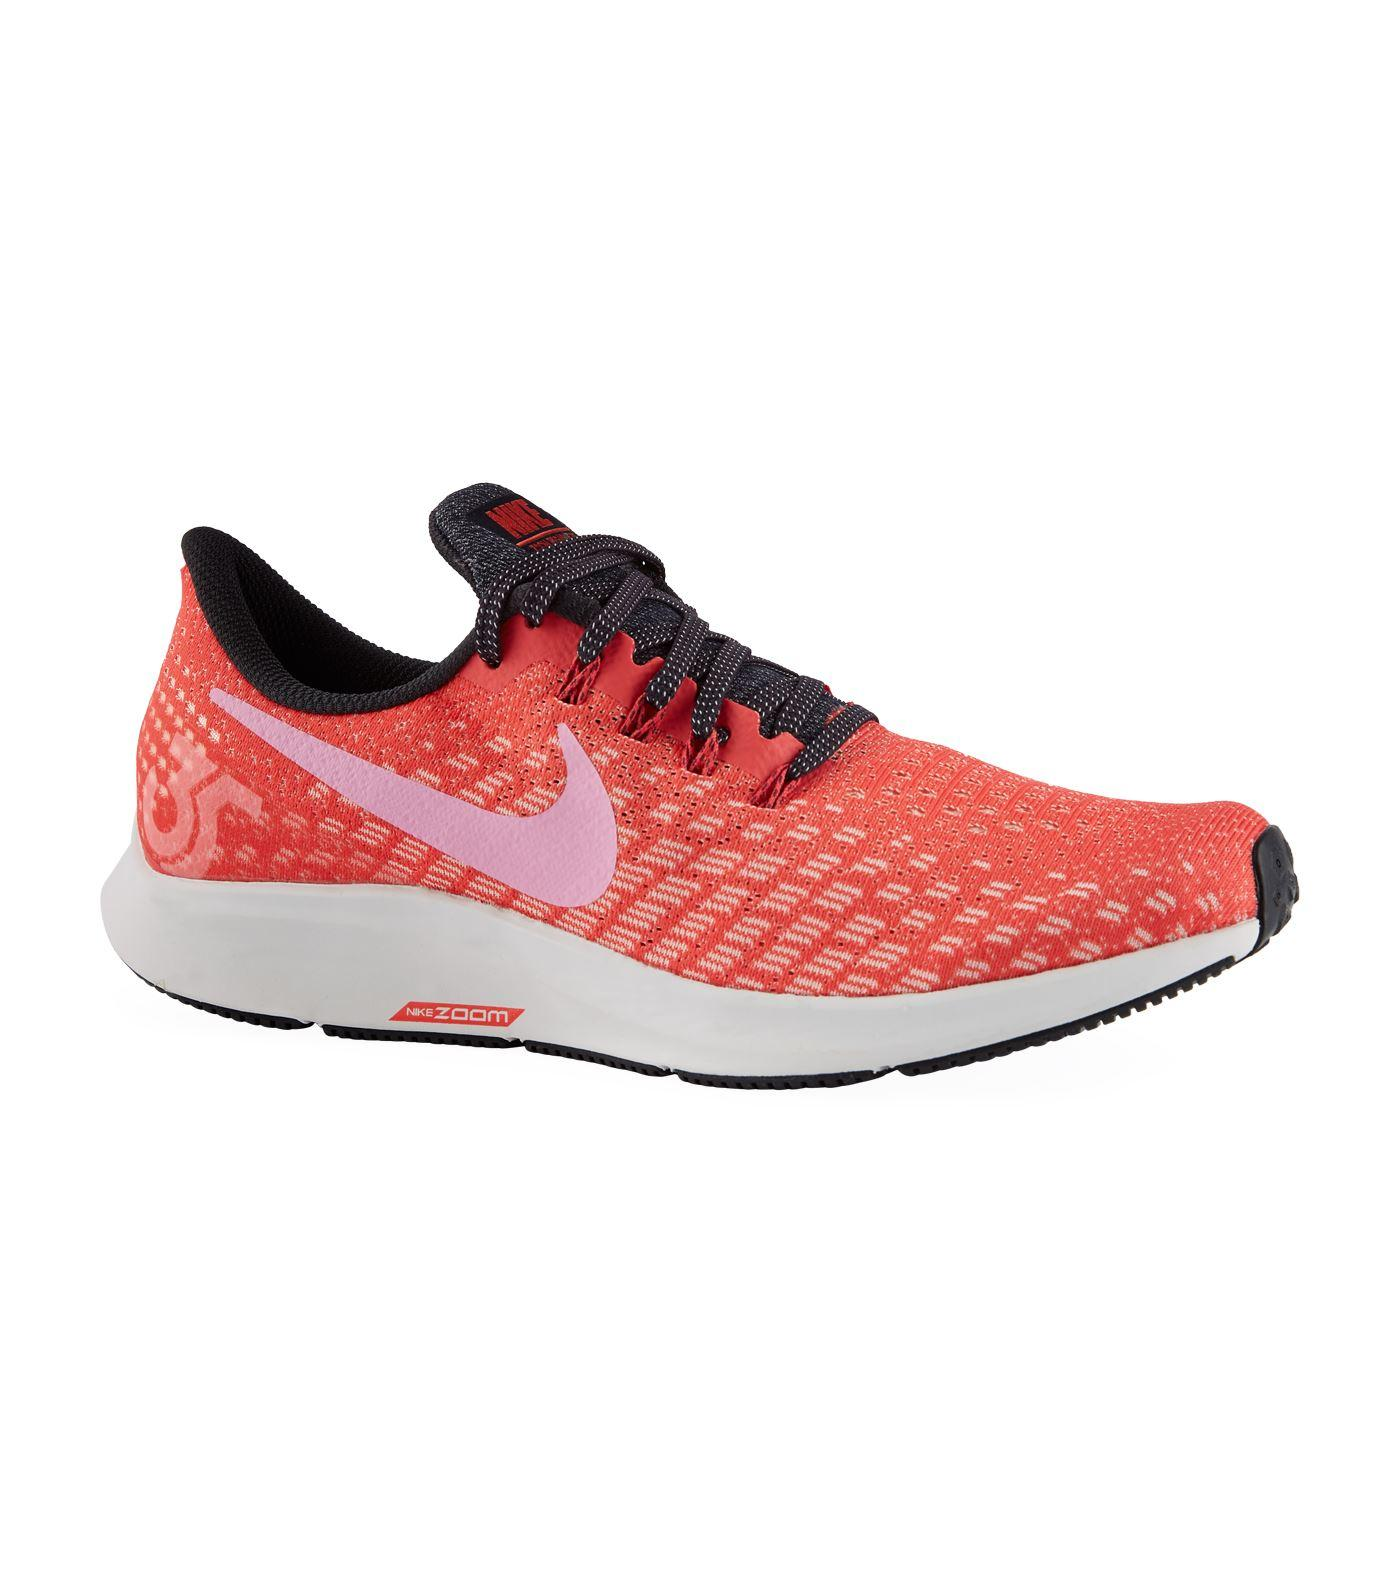 f0420651ab44 Nike Air Zoom Pegasus 35 Trainers in Red - Lyst